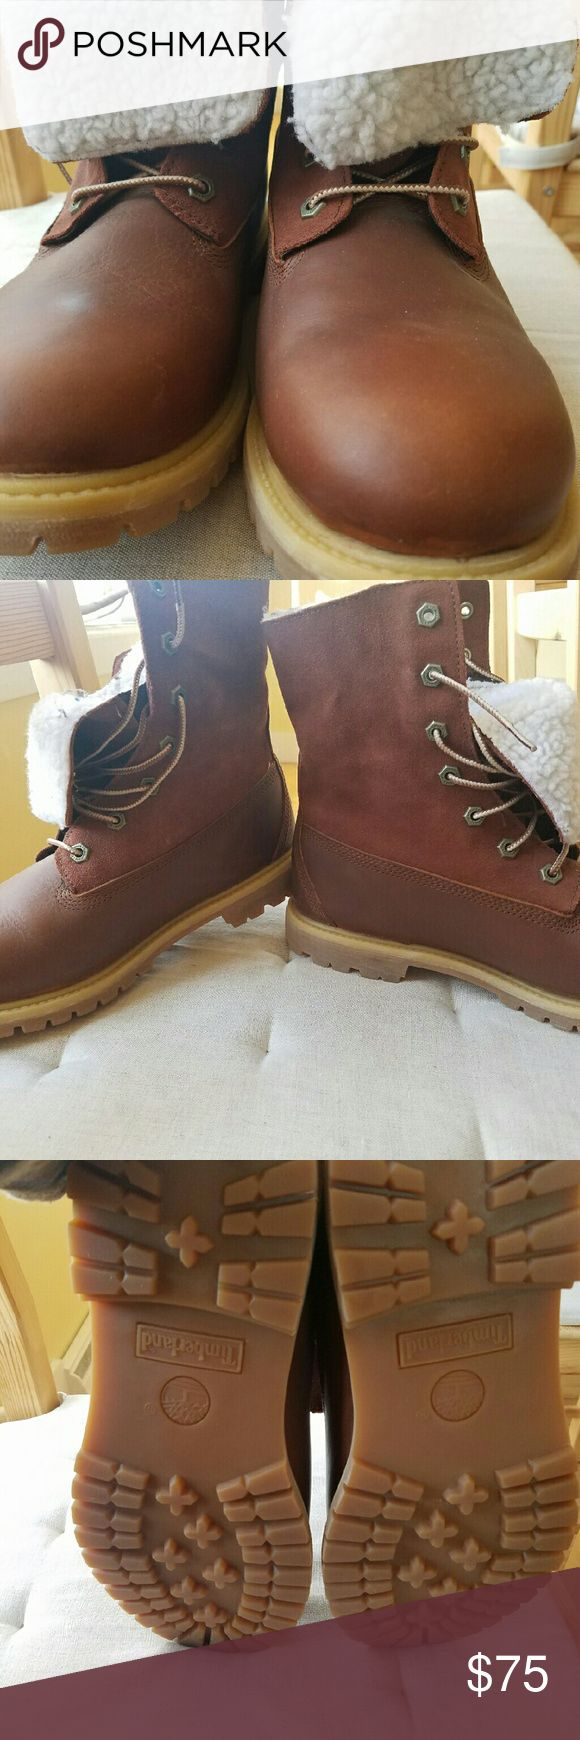 Timberland Earthkeepers Never worn! Timberland boots, size 10 women's, excellent condition. Timberland Shoes Ankle Boots & Booties